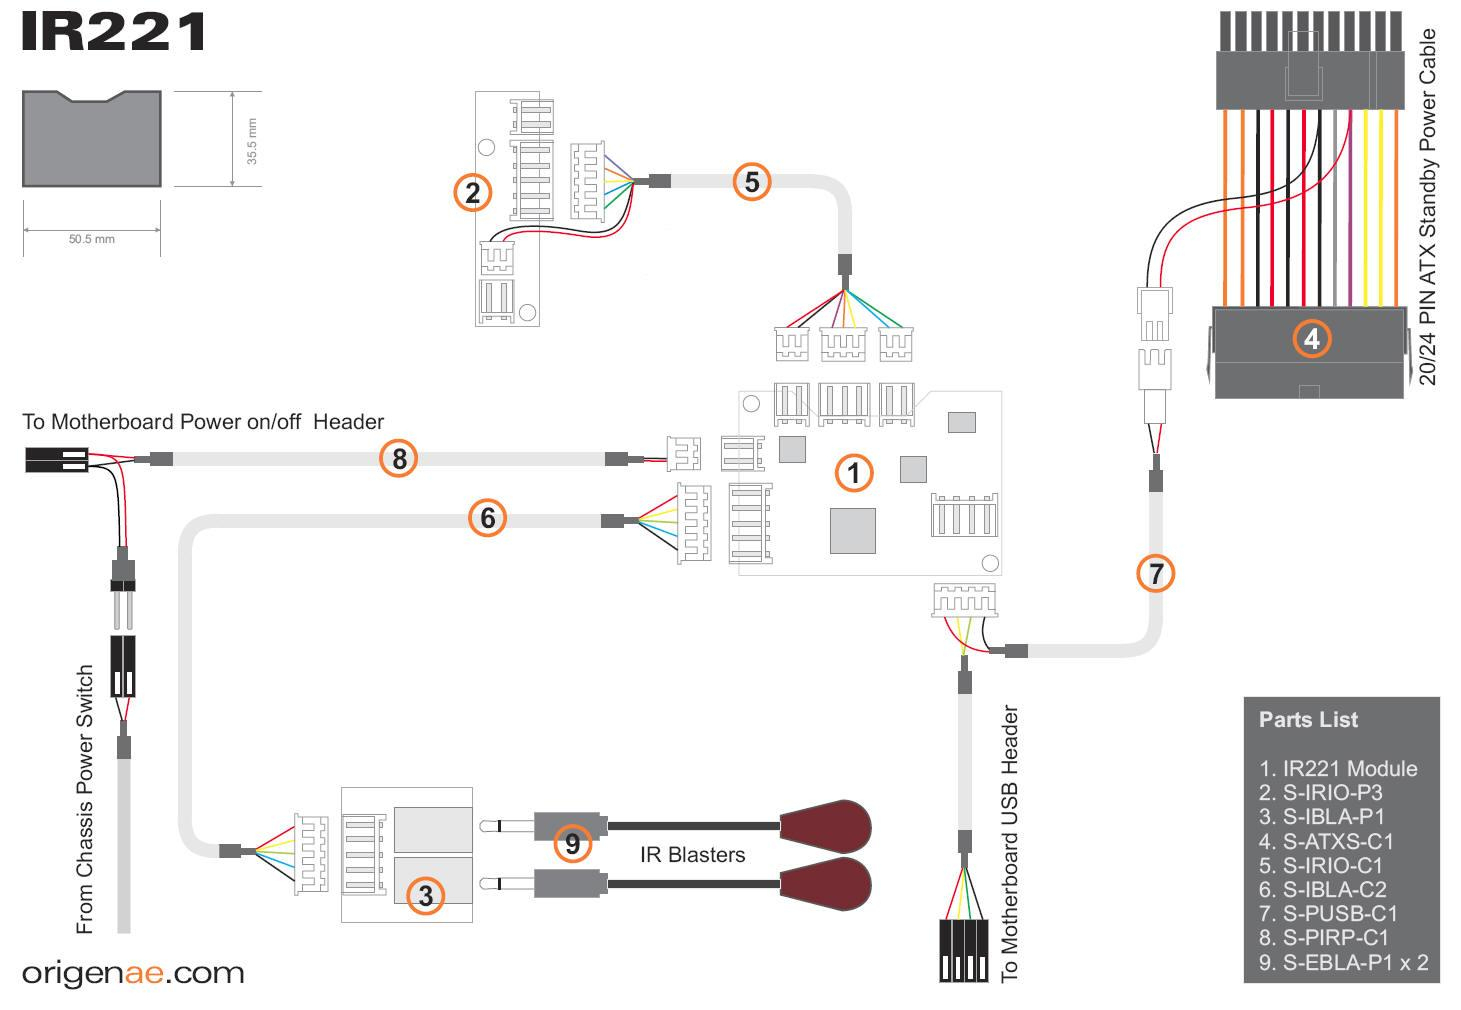 Data Cable Wiring House - Free Wiring Diagram For You • - Rj45 To Usb Cable Wiring Diagram